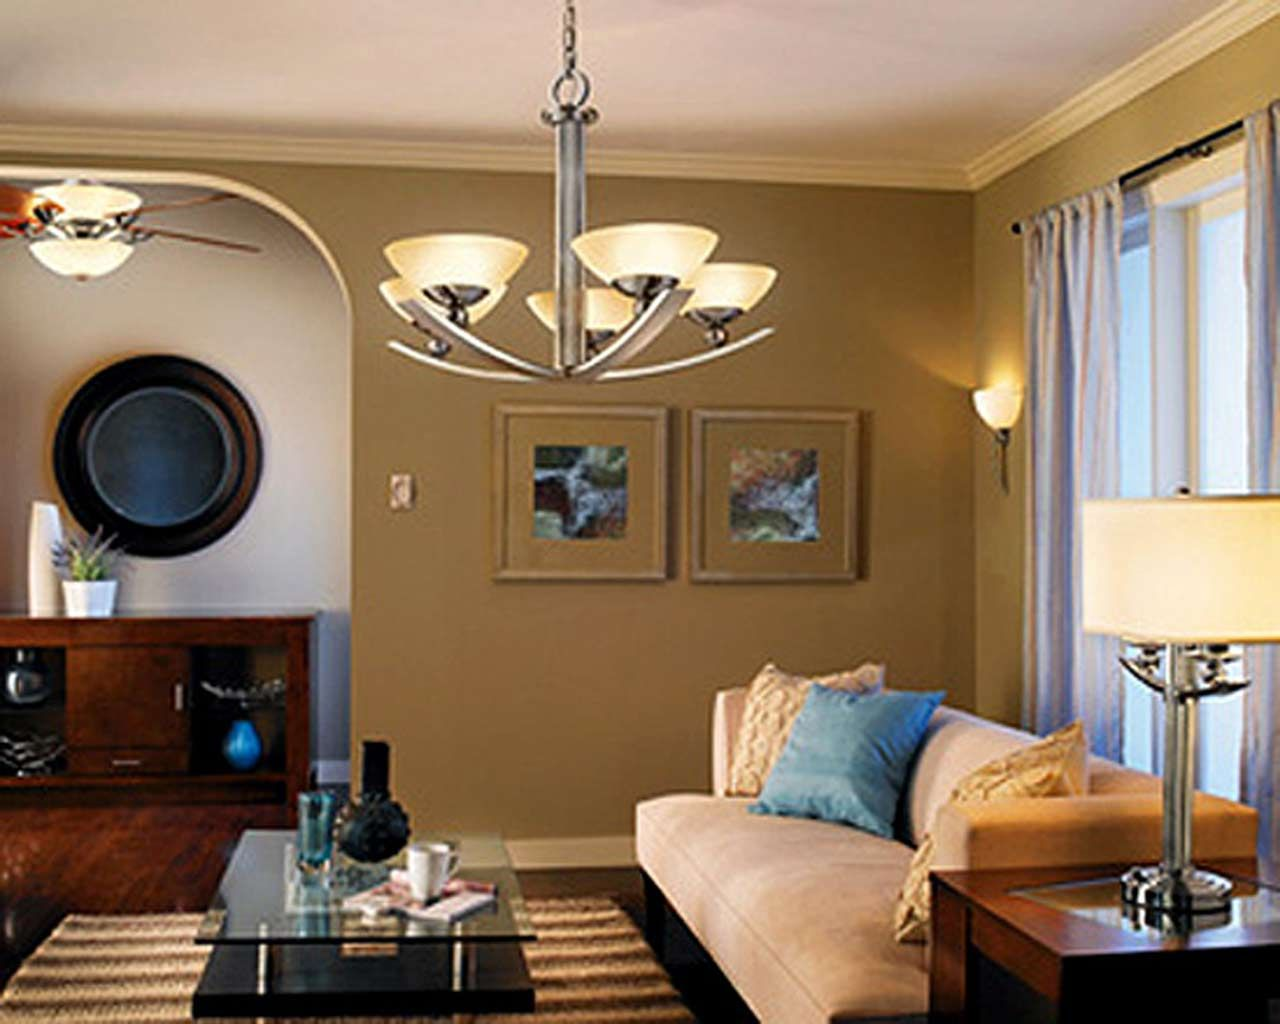 Beautiful Ceiling Lighting Ideas ~ http://www.lookmyhomes.com/choosing-ceiling-lighting-ideas-for-your-house/